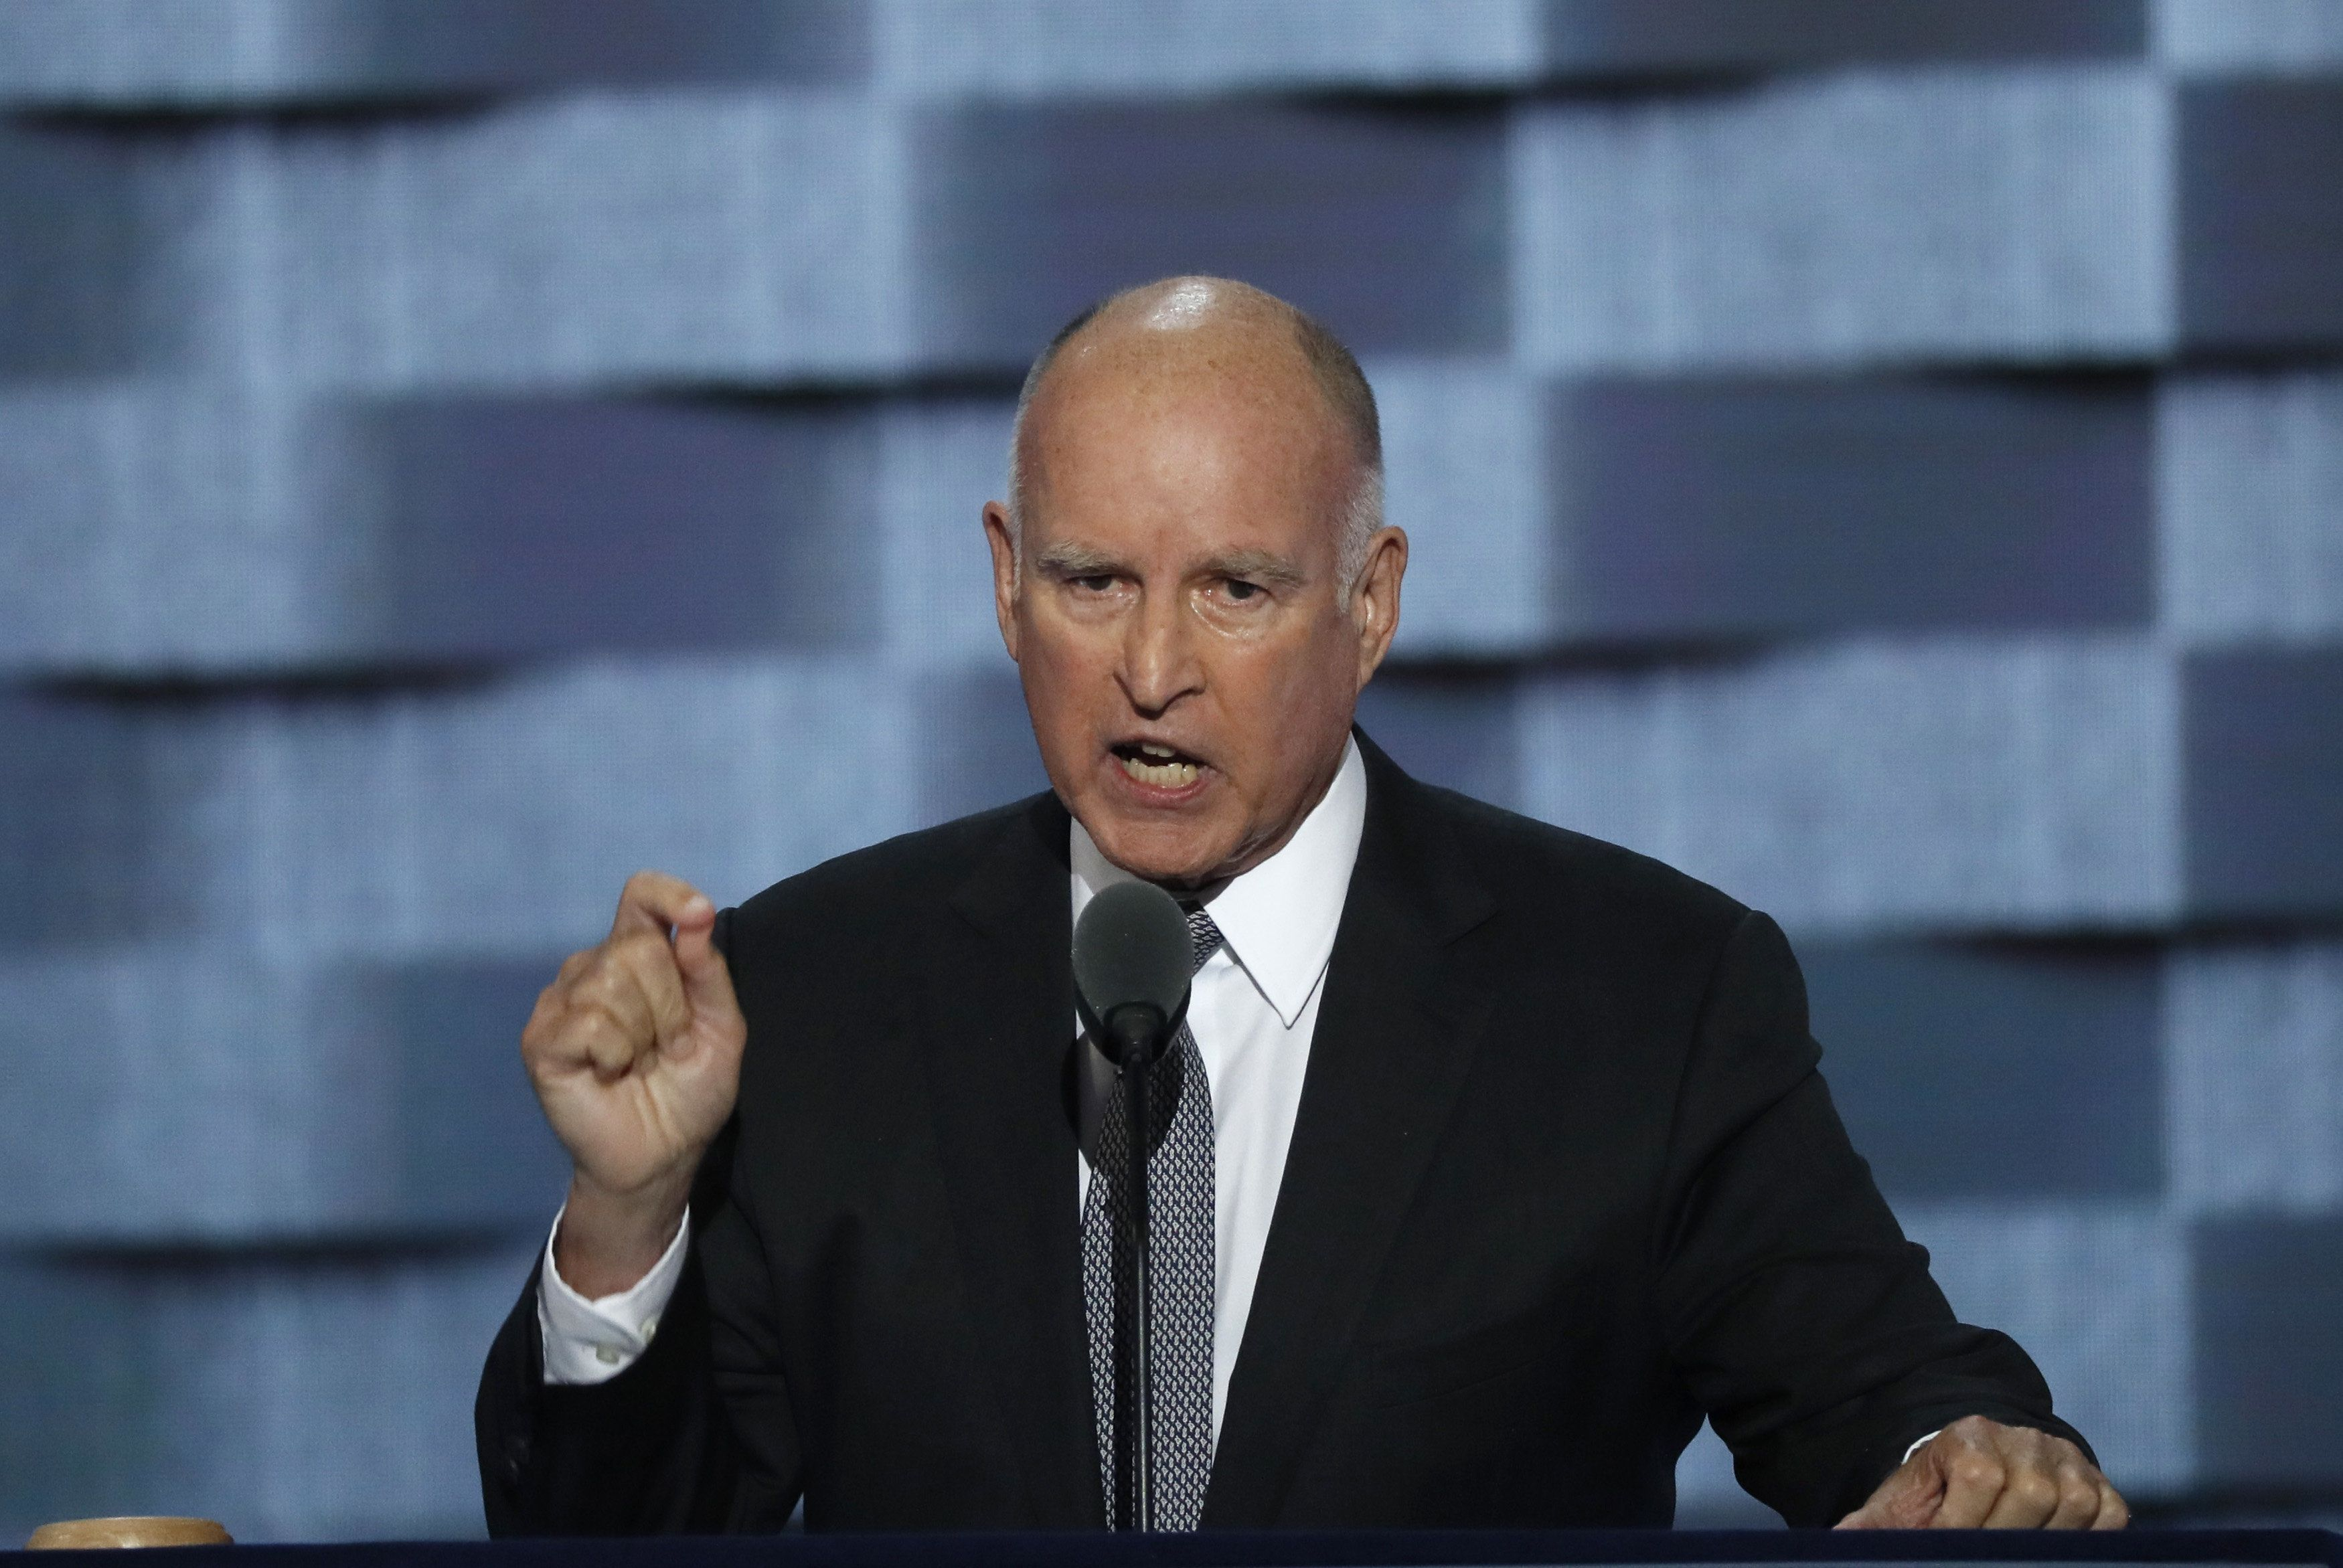 California Gov. Jerry Brown (D) rebuked President Donald Trump in his State of the State address.